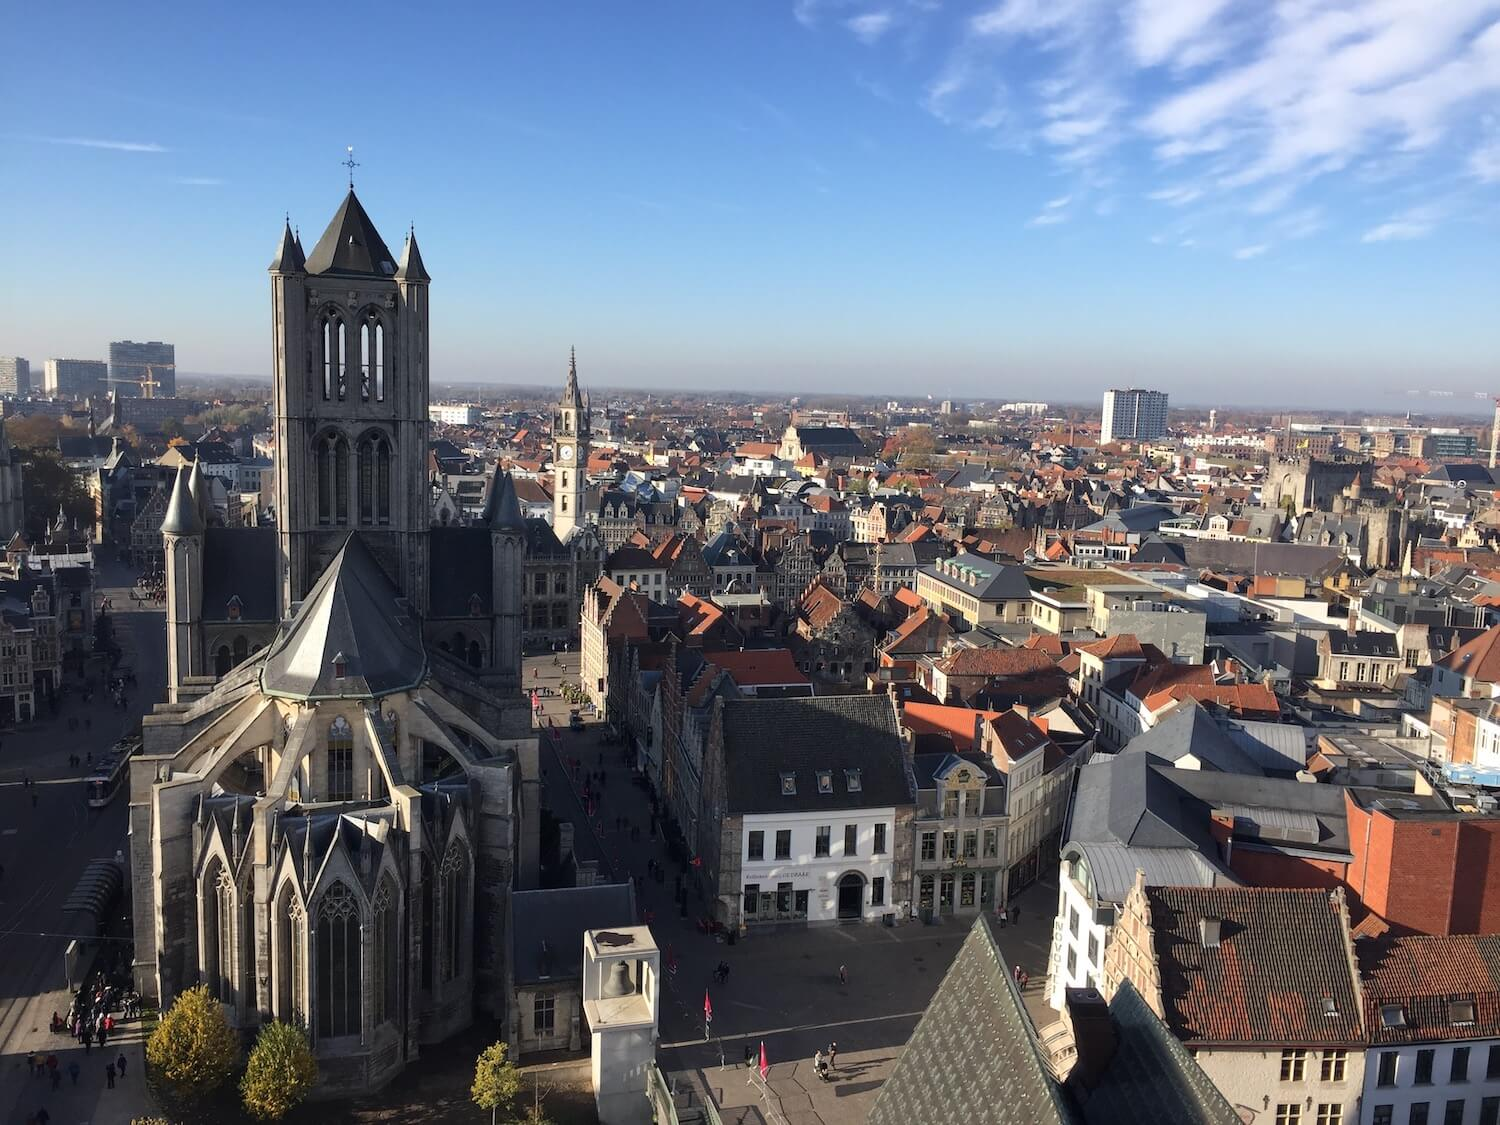 Ghent from above